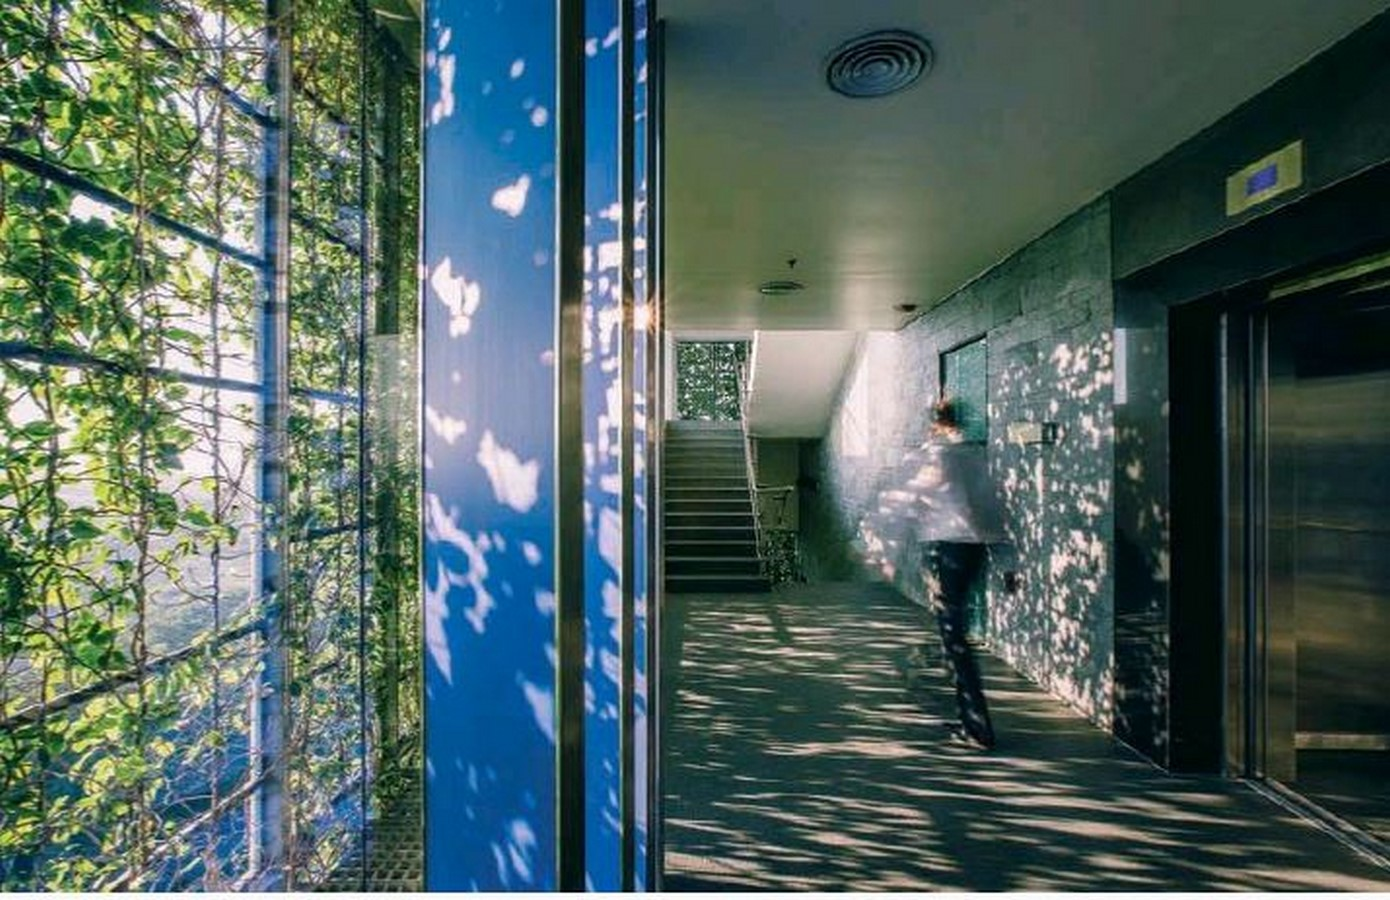 KMC Corporate Office by Rahul Mehrotra: Modulation of light and air - Sheet4